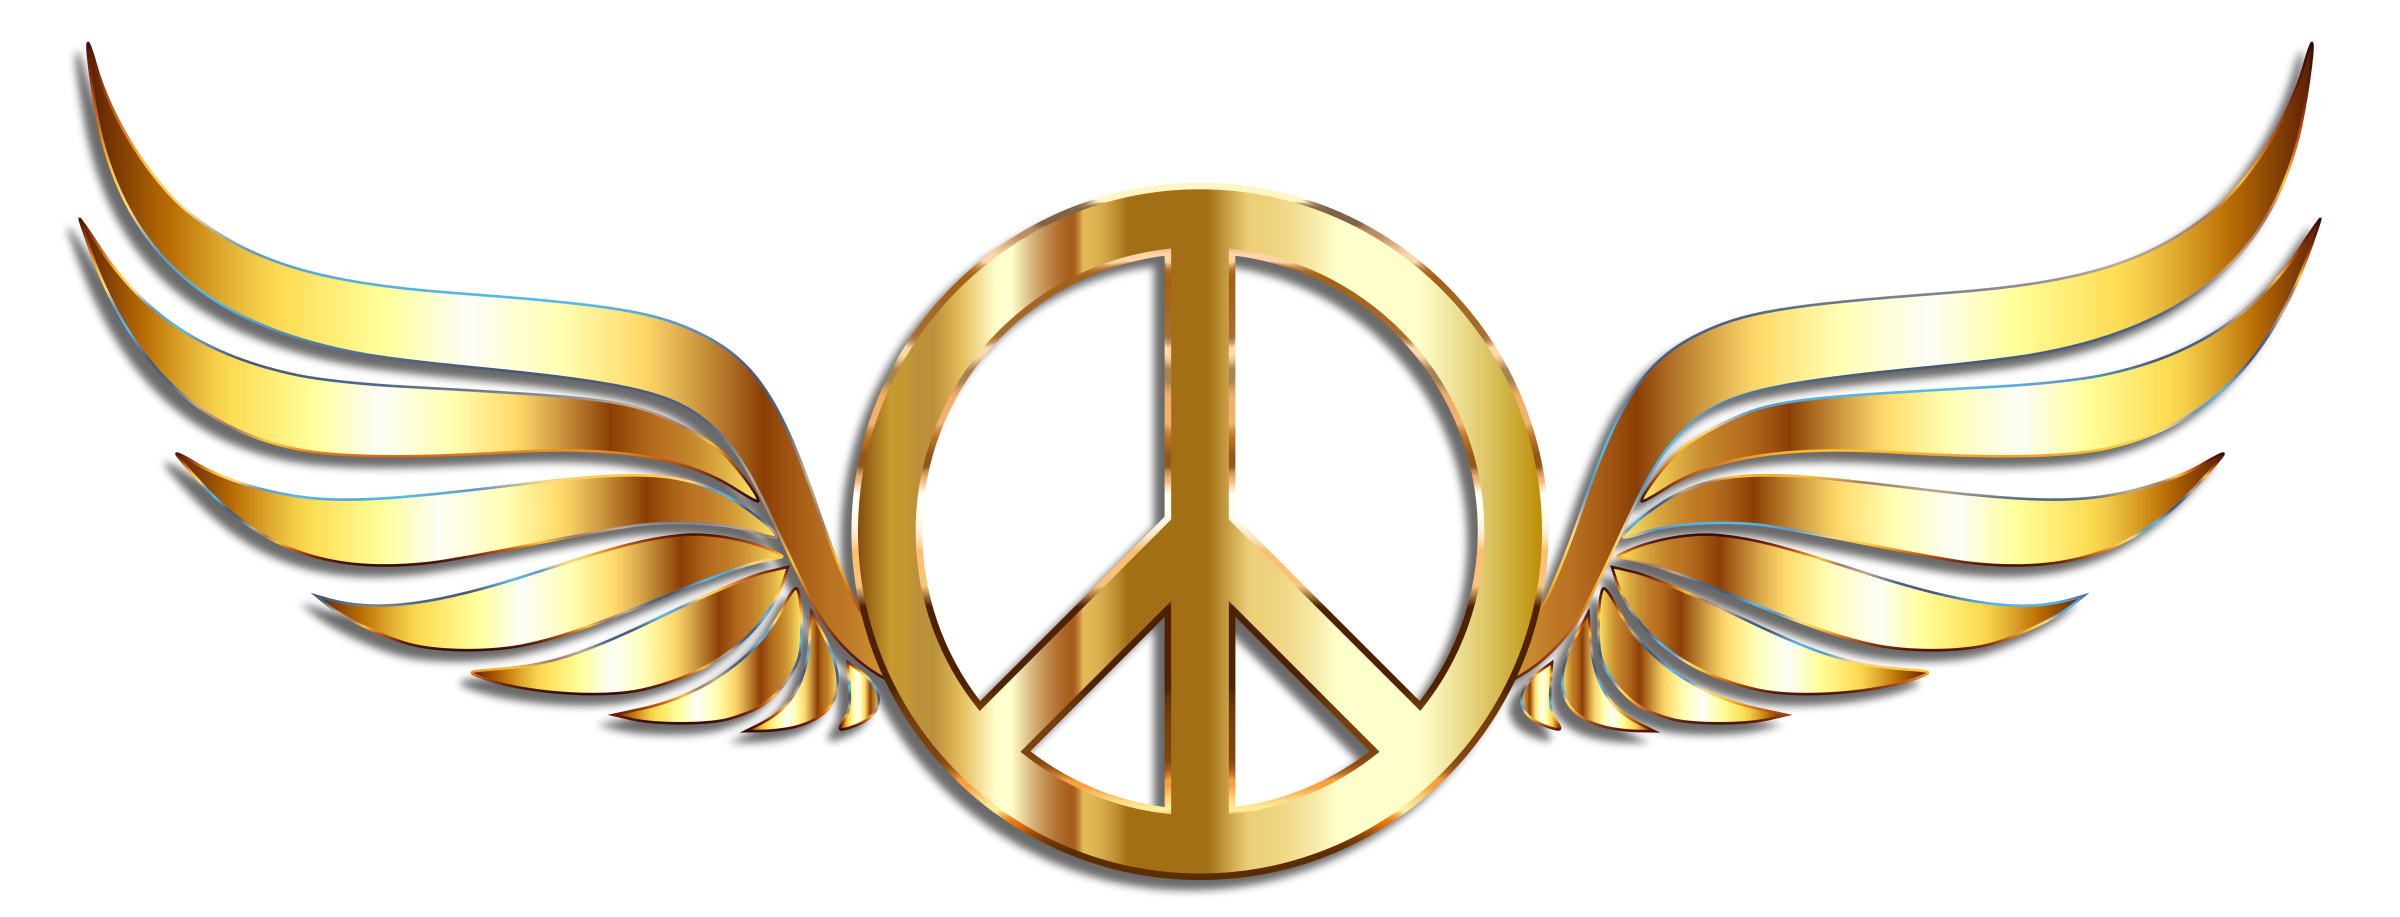 Wing clipart metal. Gold peace sign wings